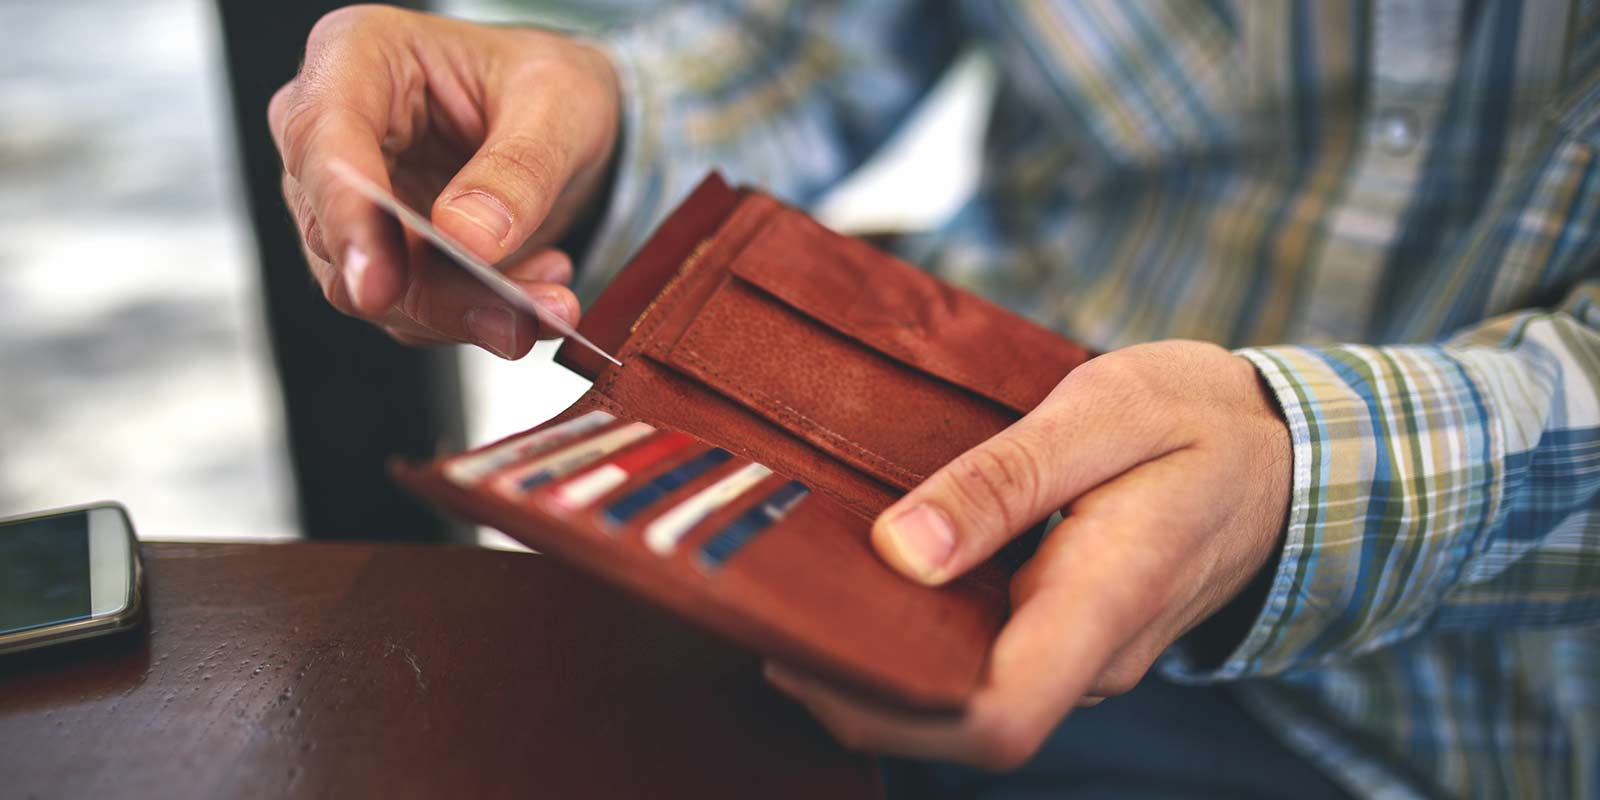 A man pulls a credit or debit card out of his leather wallet.